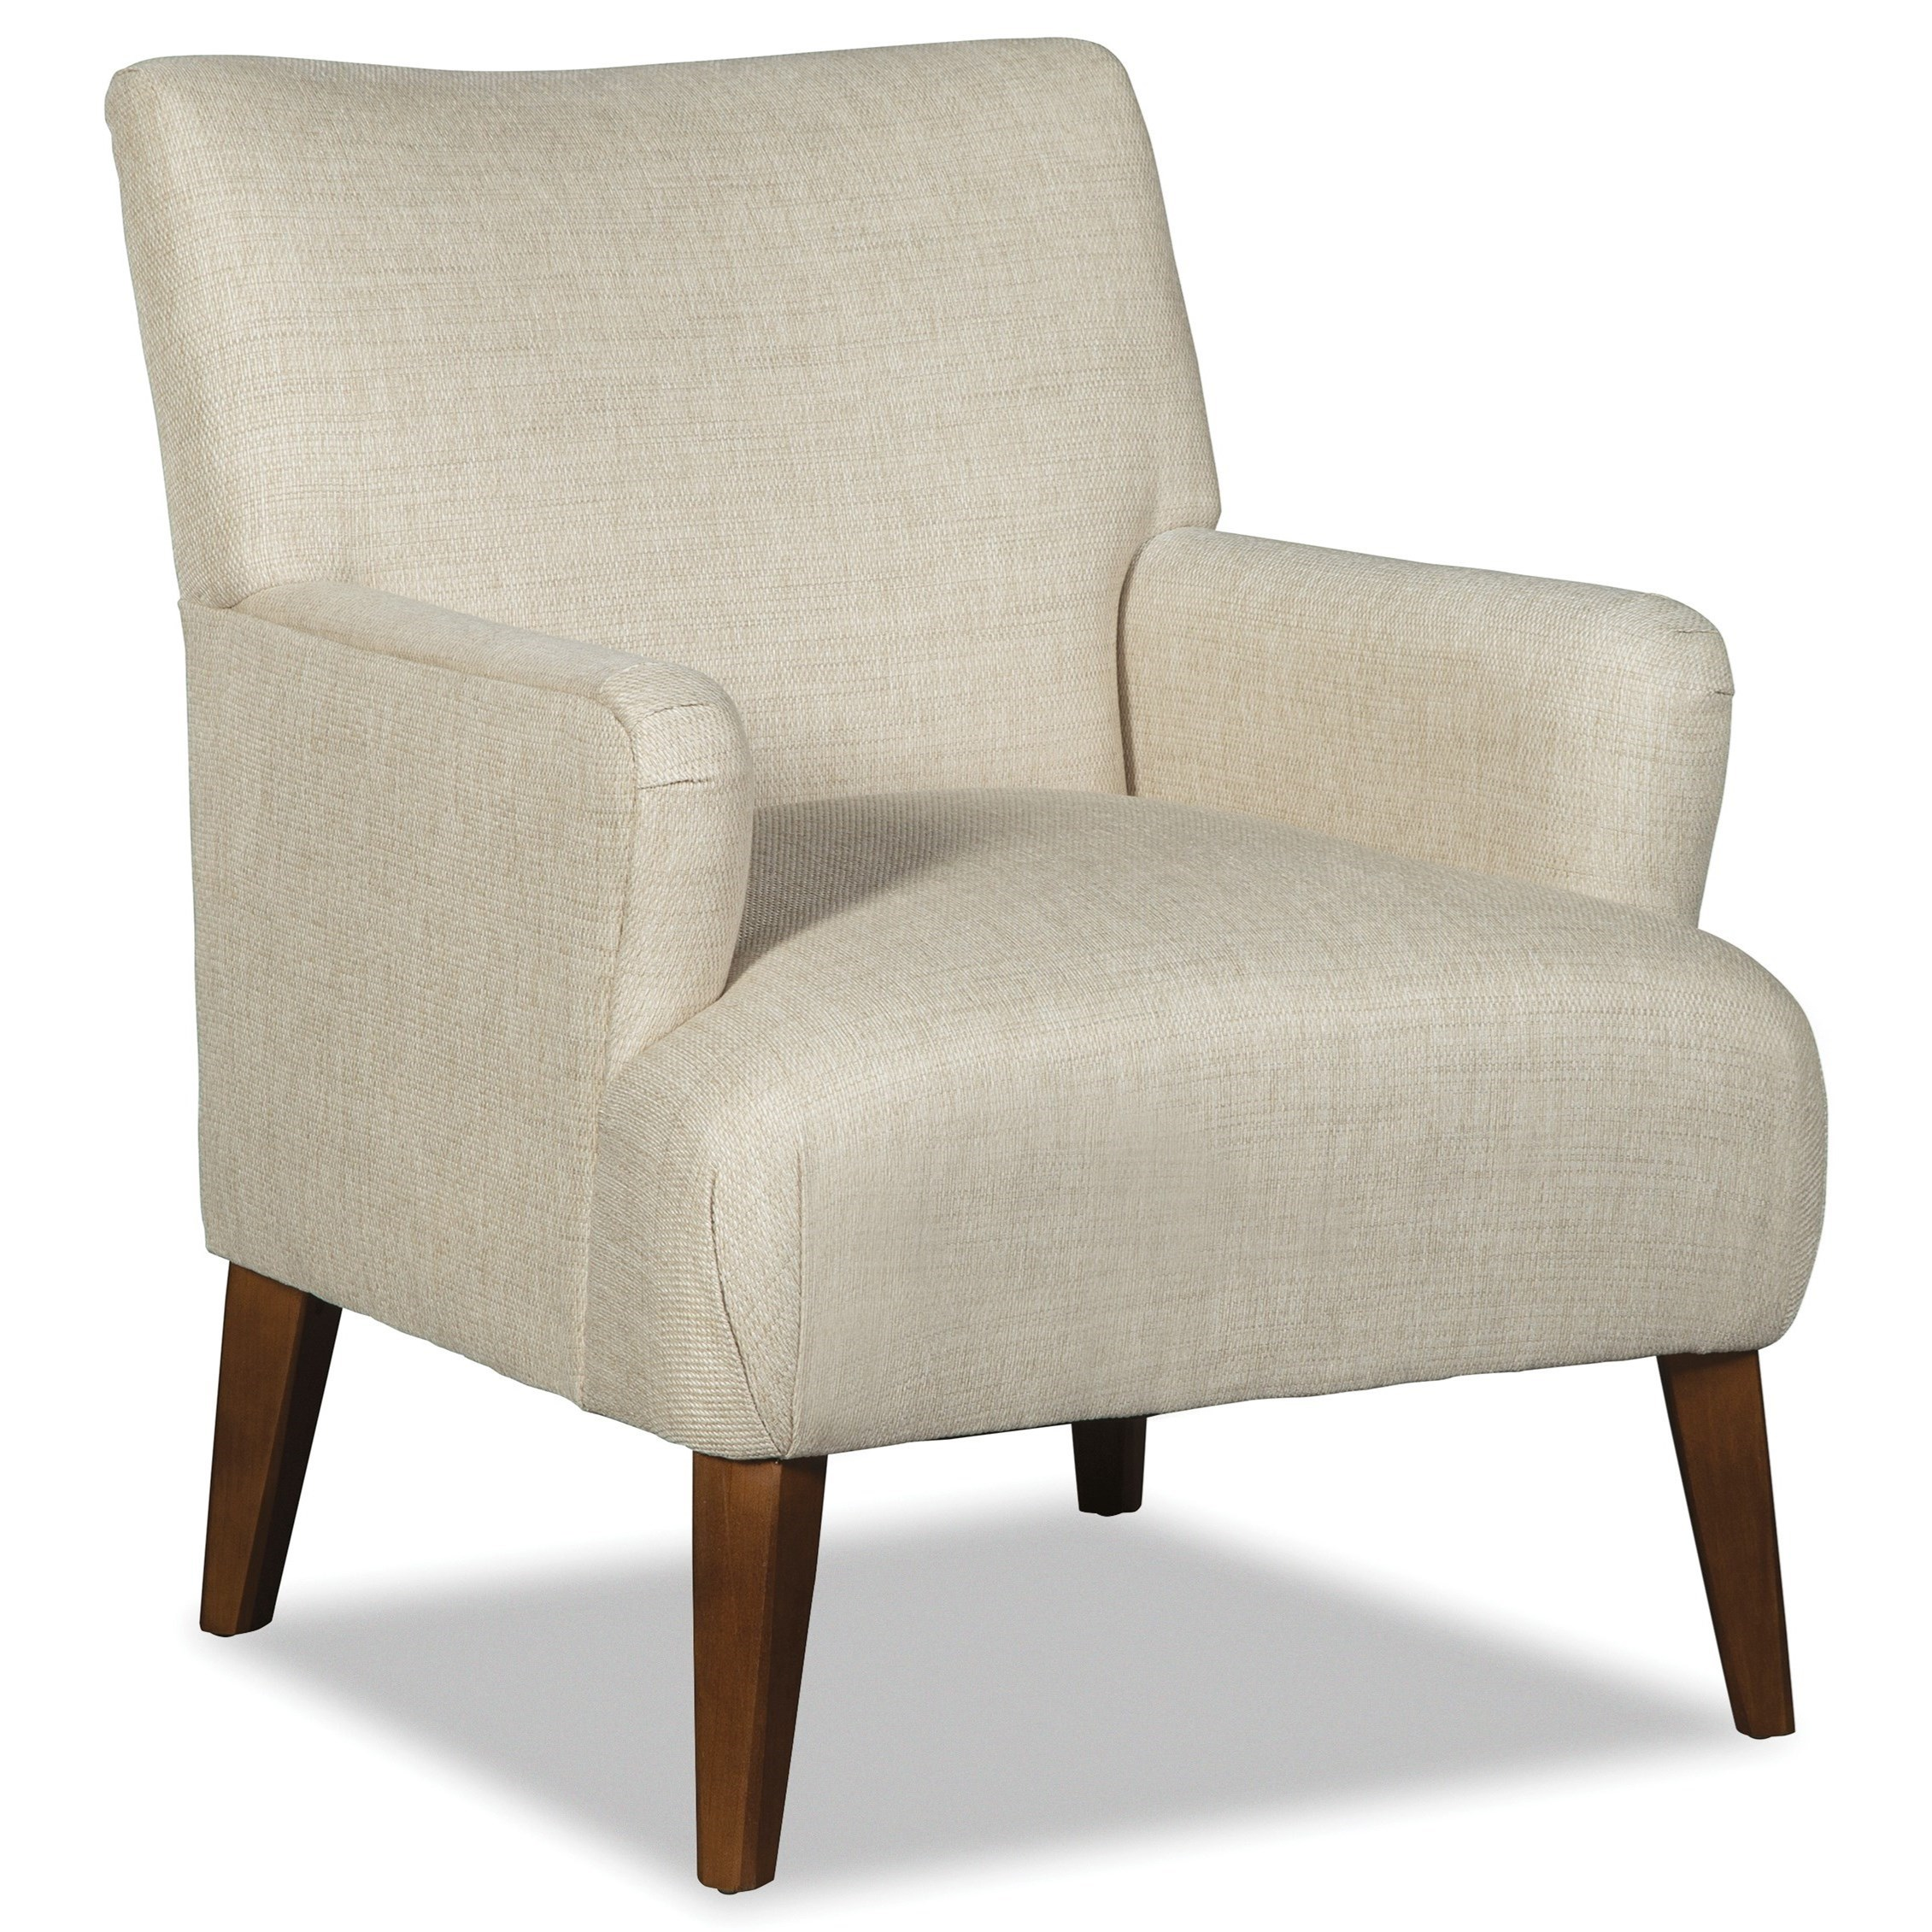 002710 Chair by Craftmaster at Powell's Furniture and Mattress